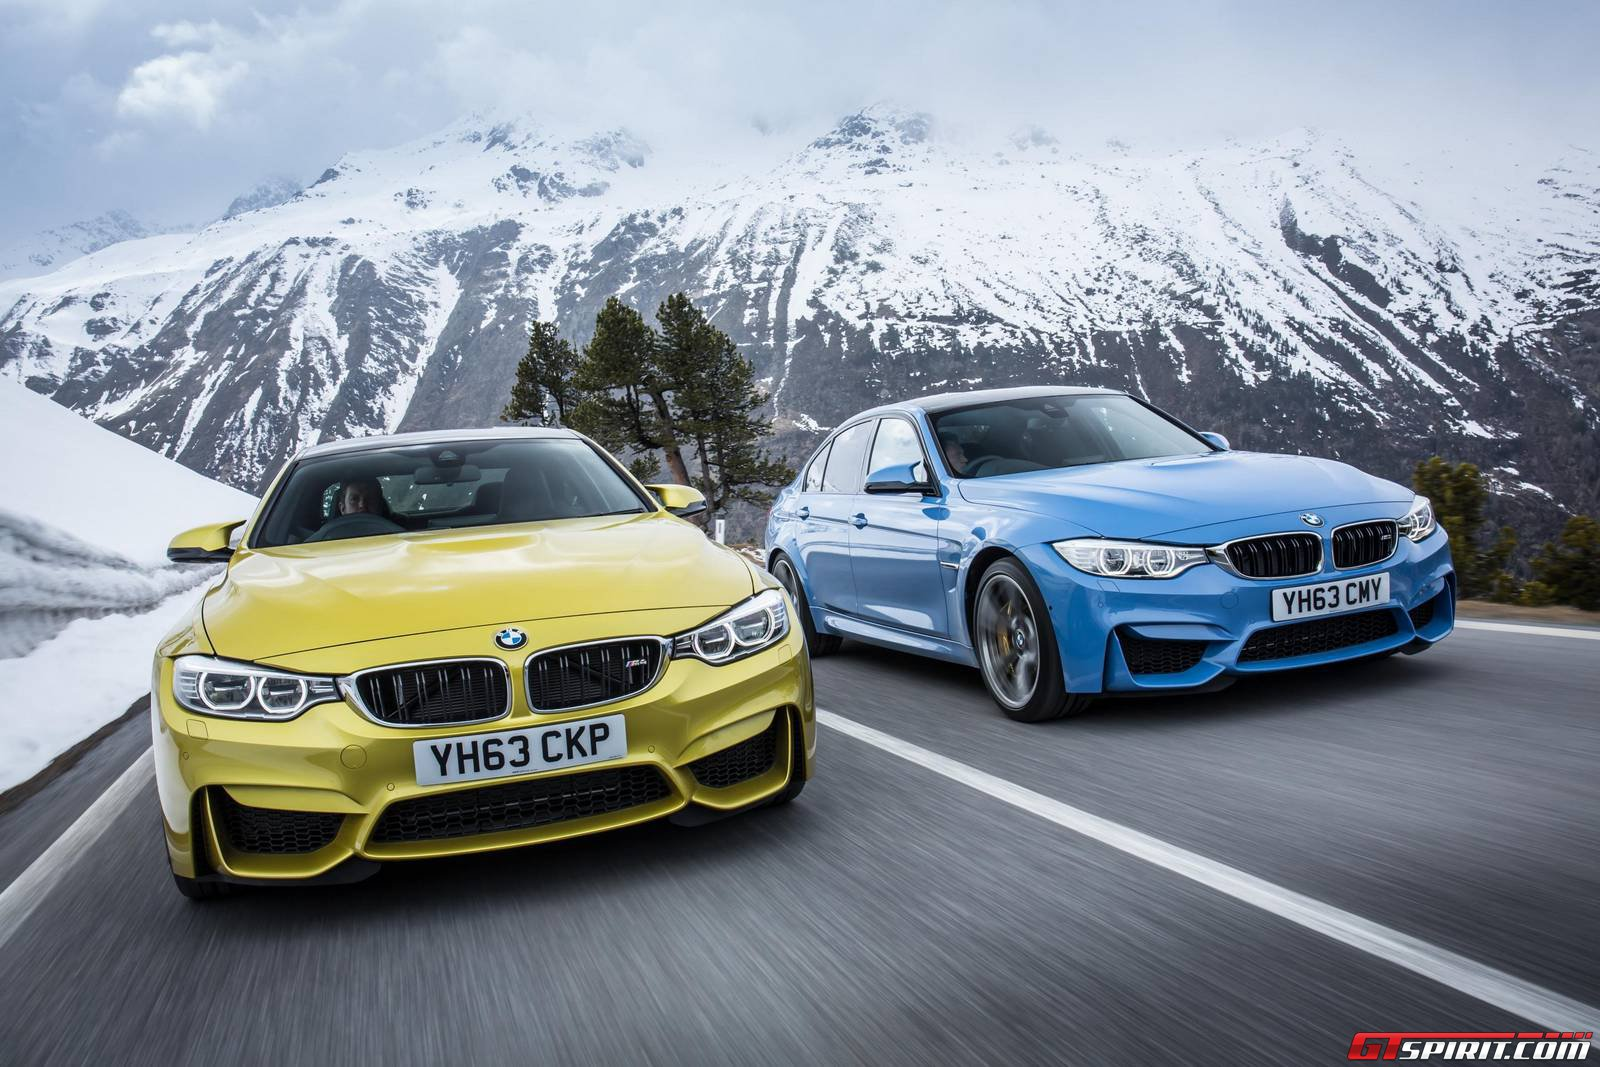 Gallery: 2014 BMW M3 Saloon and BMW M4 Coupe in the Wild ...